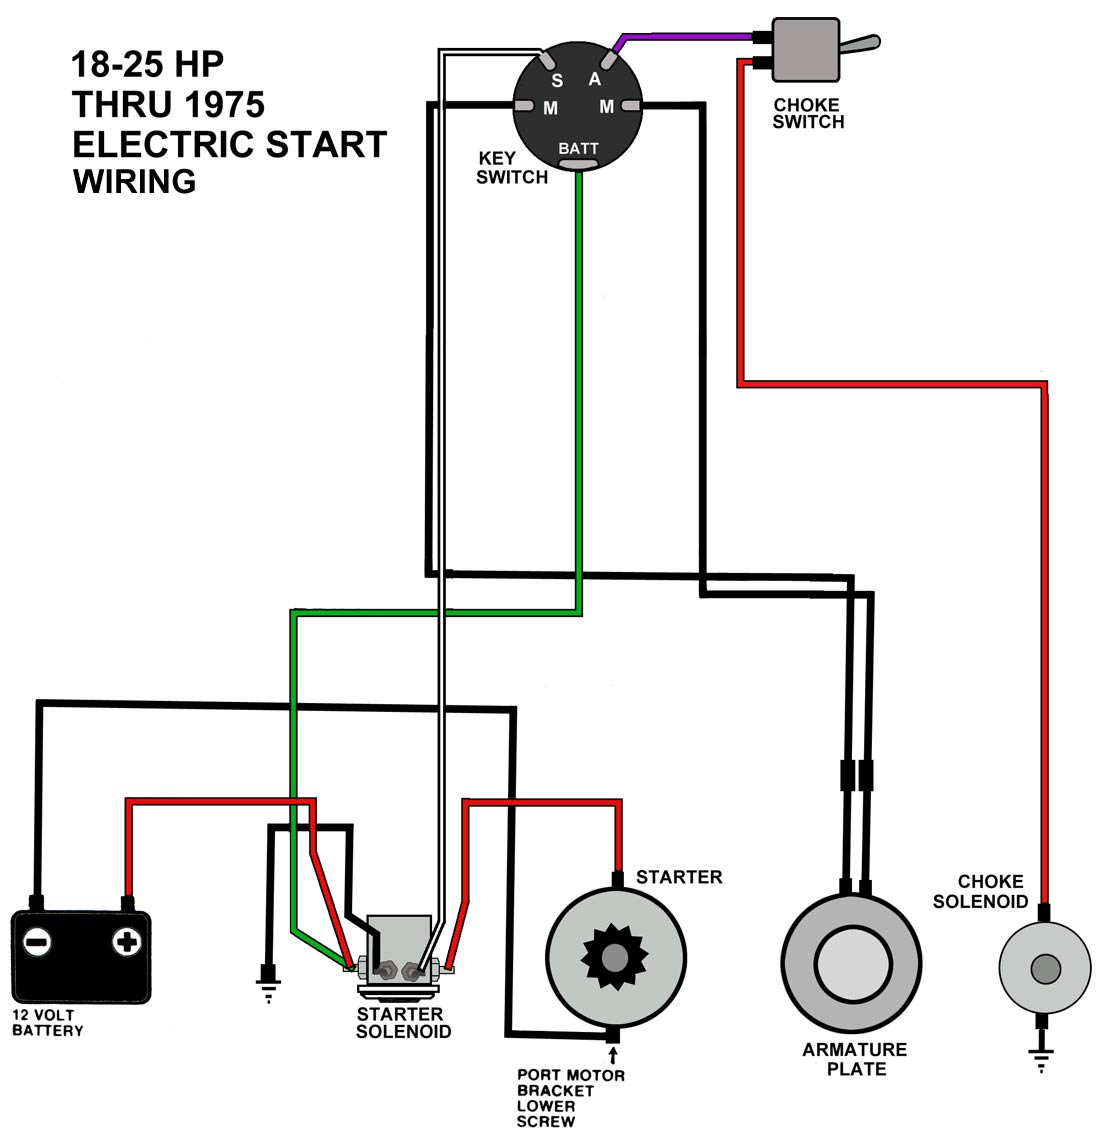 50 Hp Johnson Outboard Wiring Diagram Pdf from maxrules.com